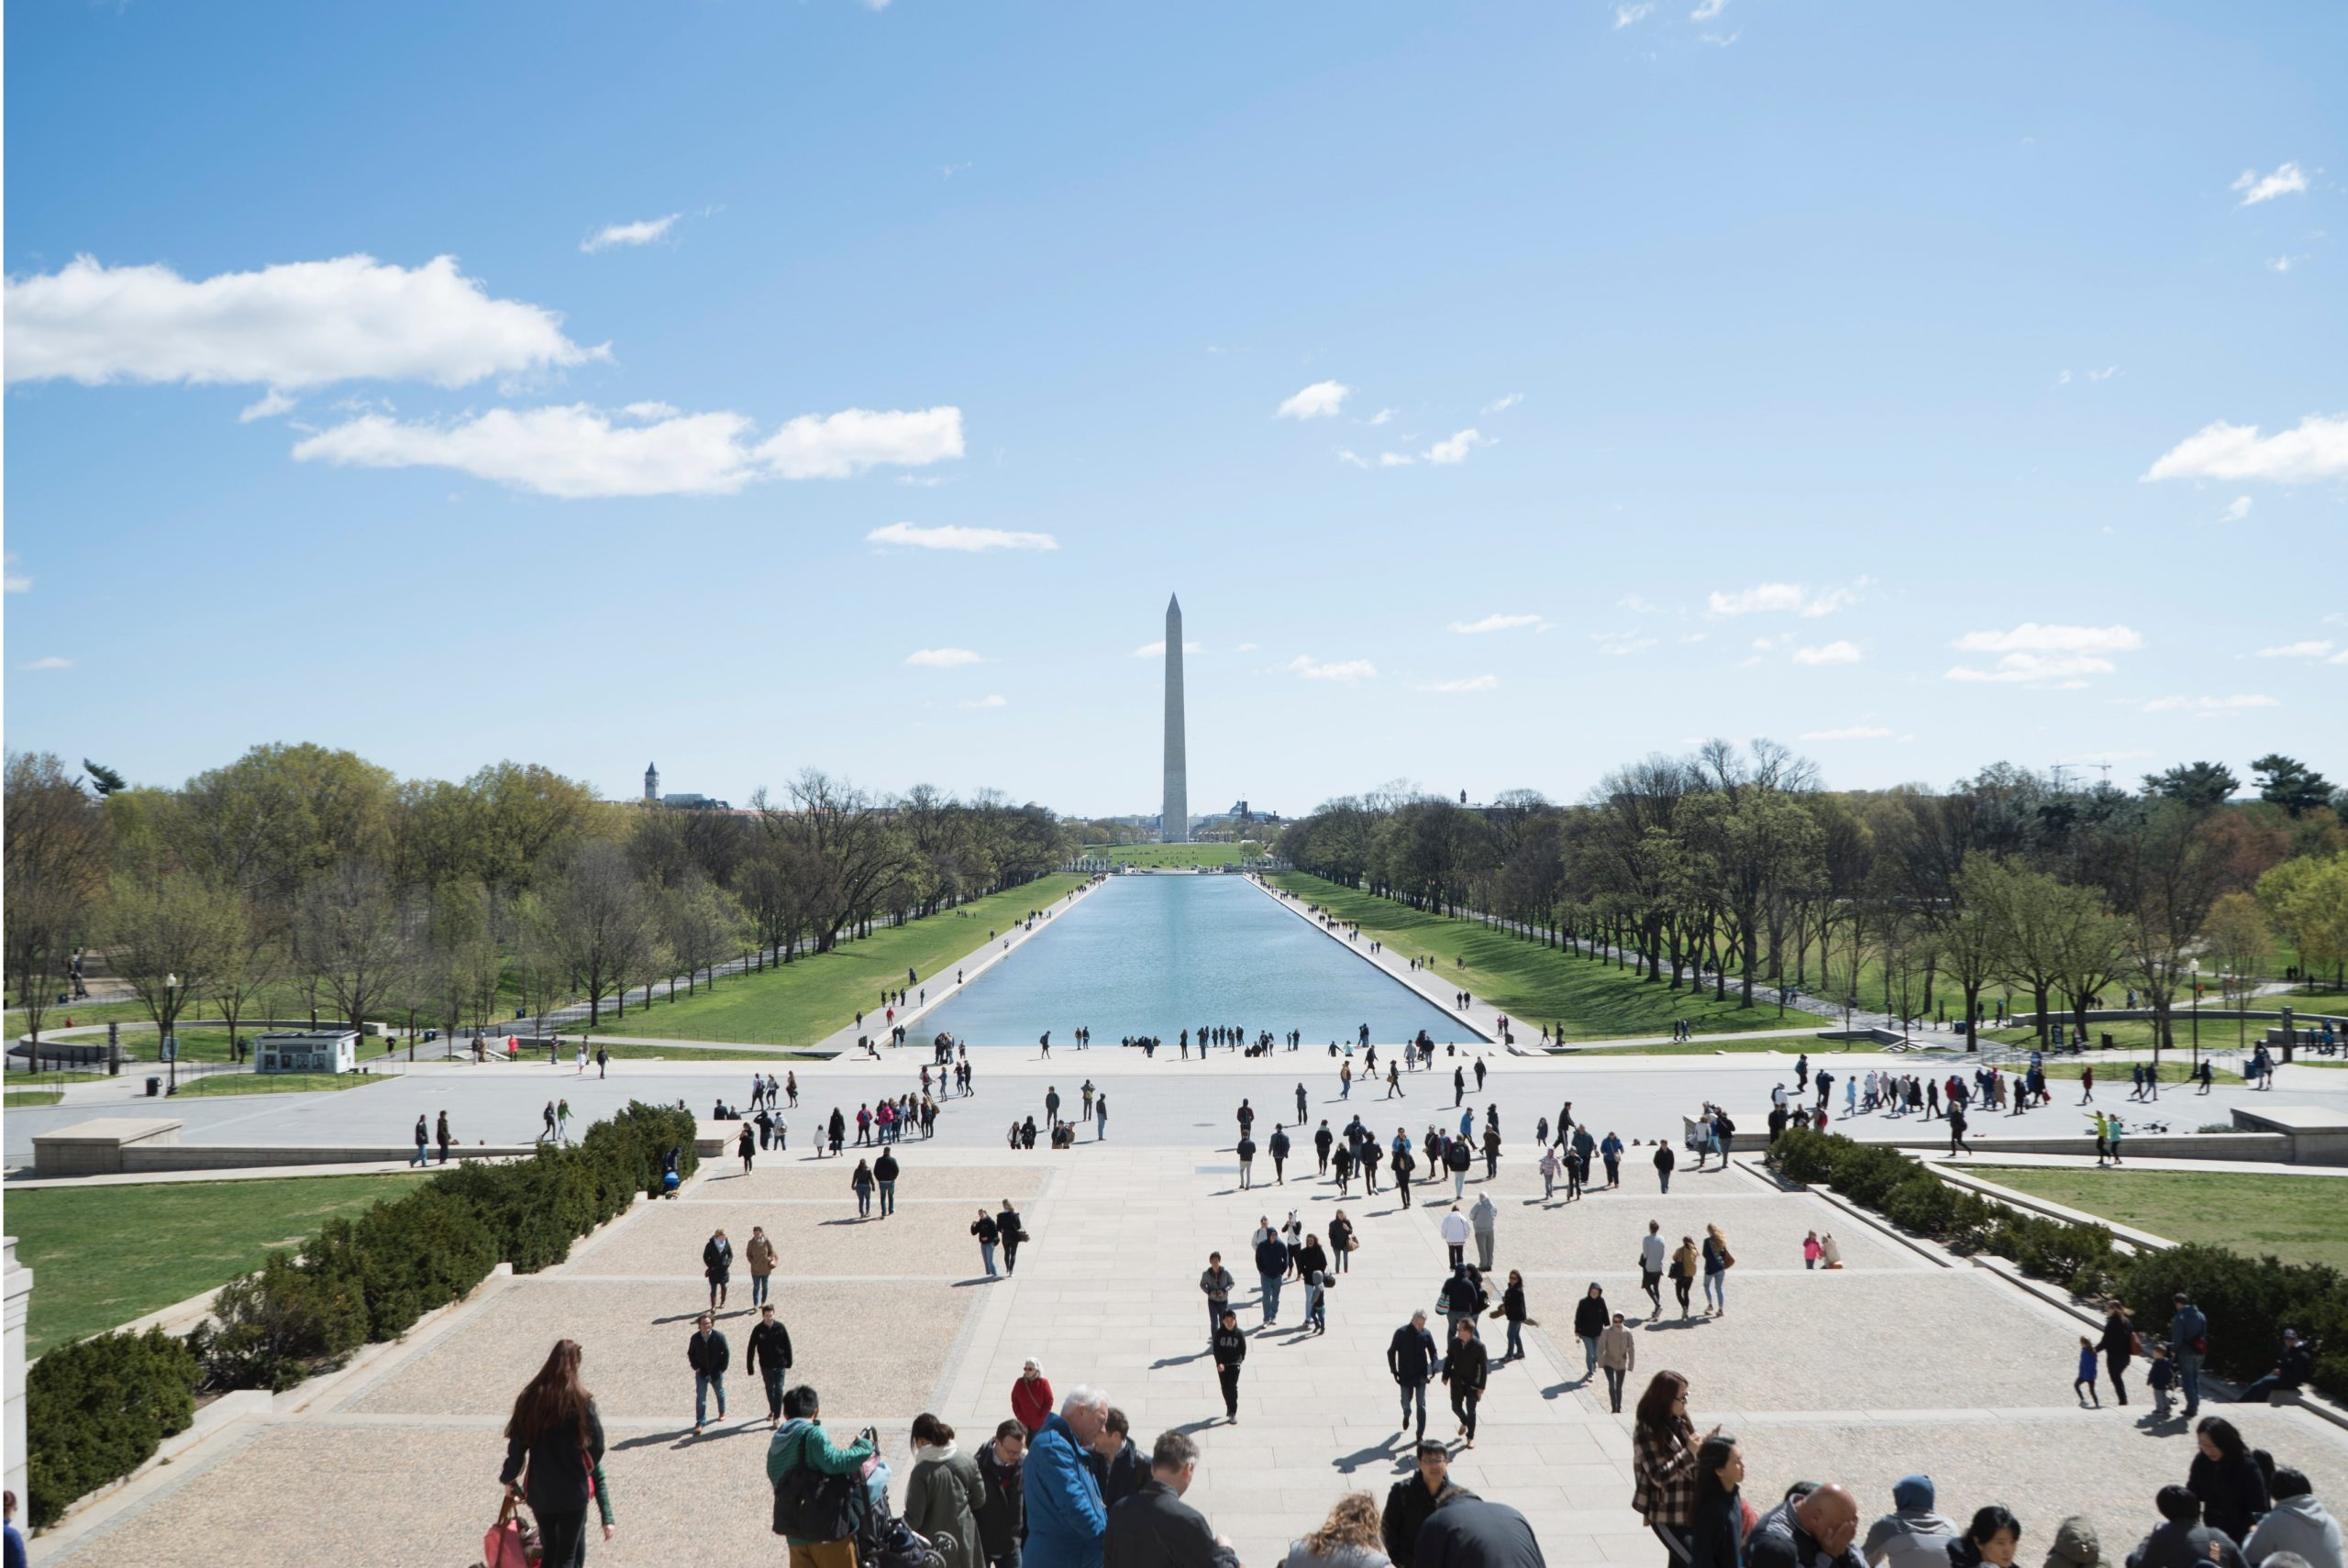 Washington Monument view with people surrounding it